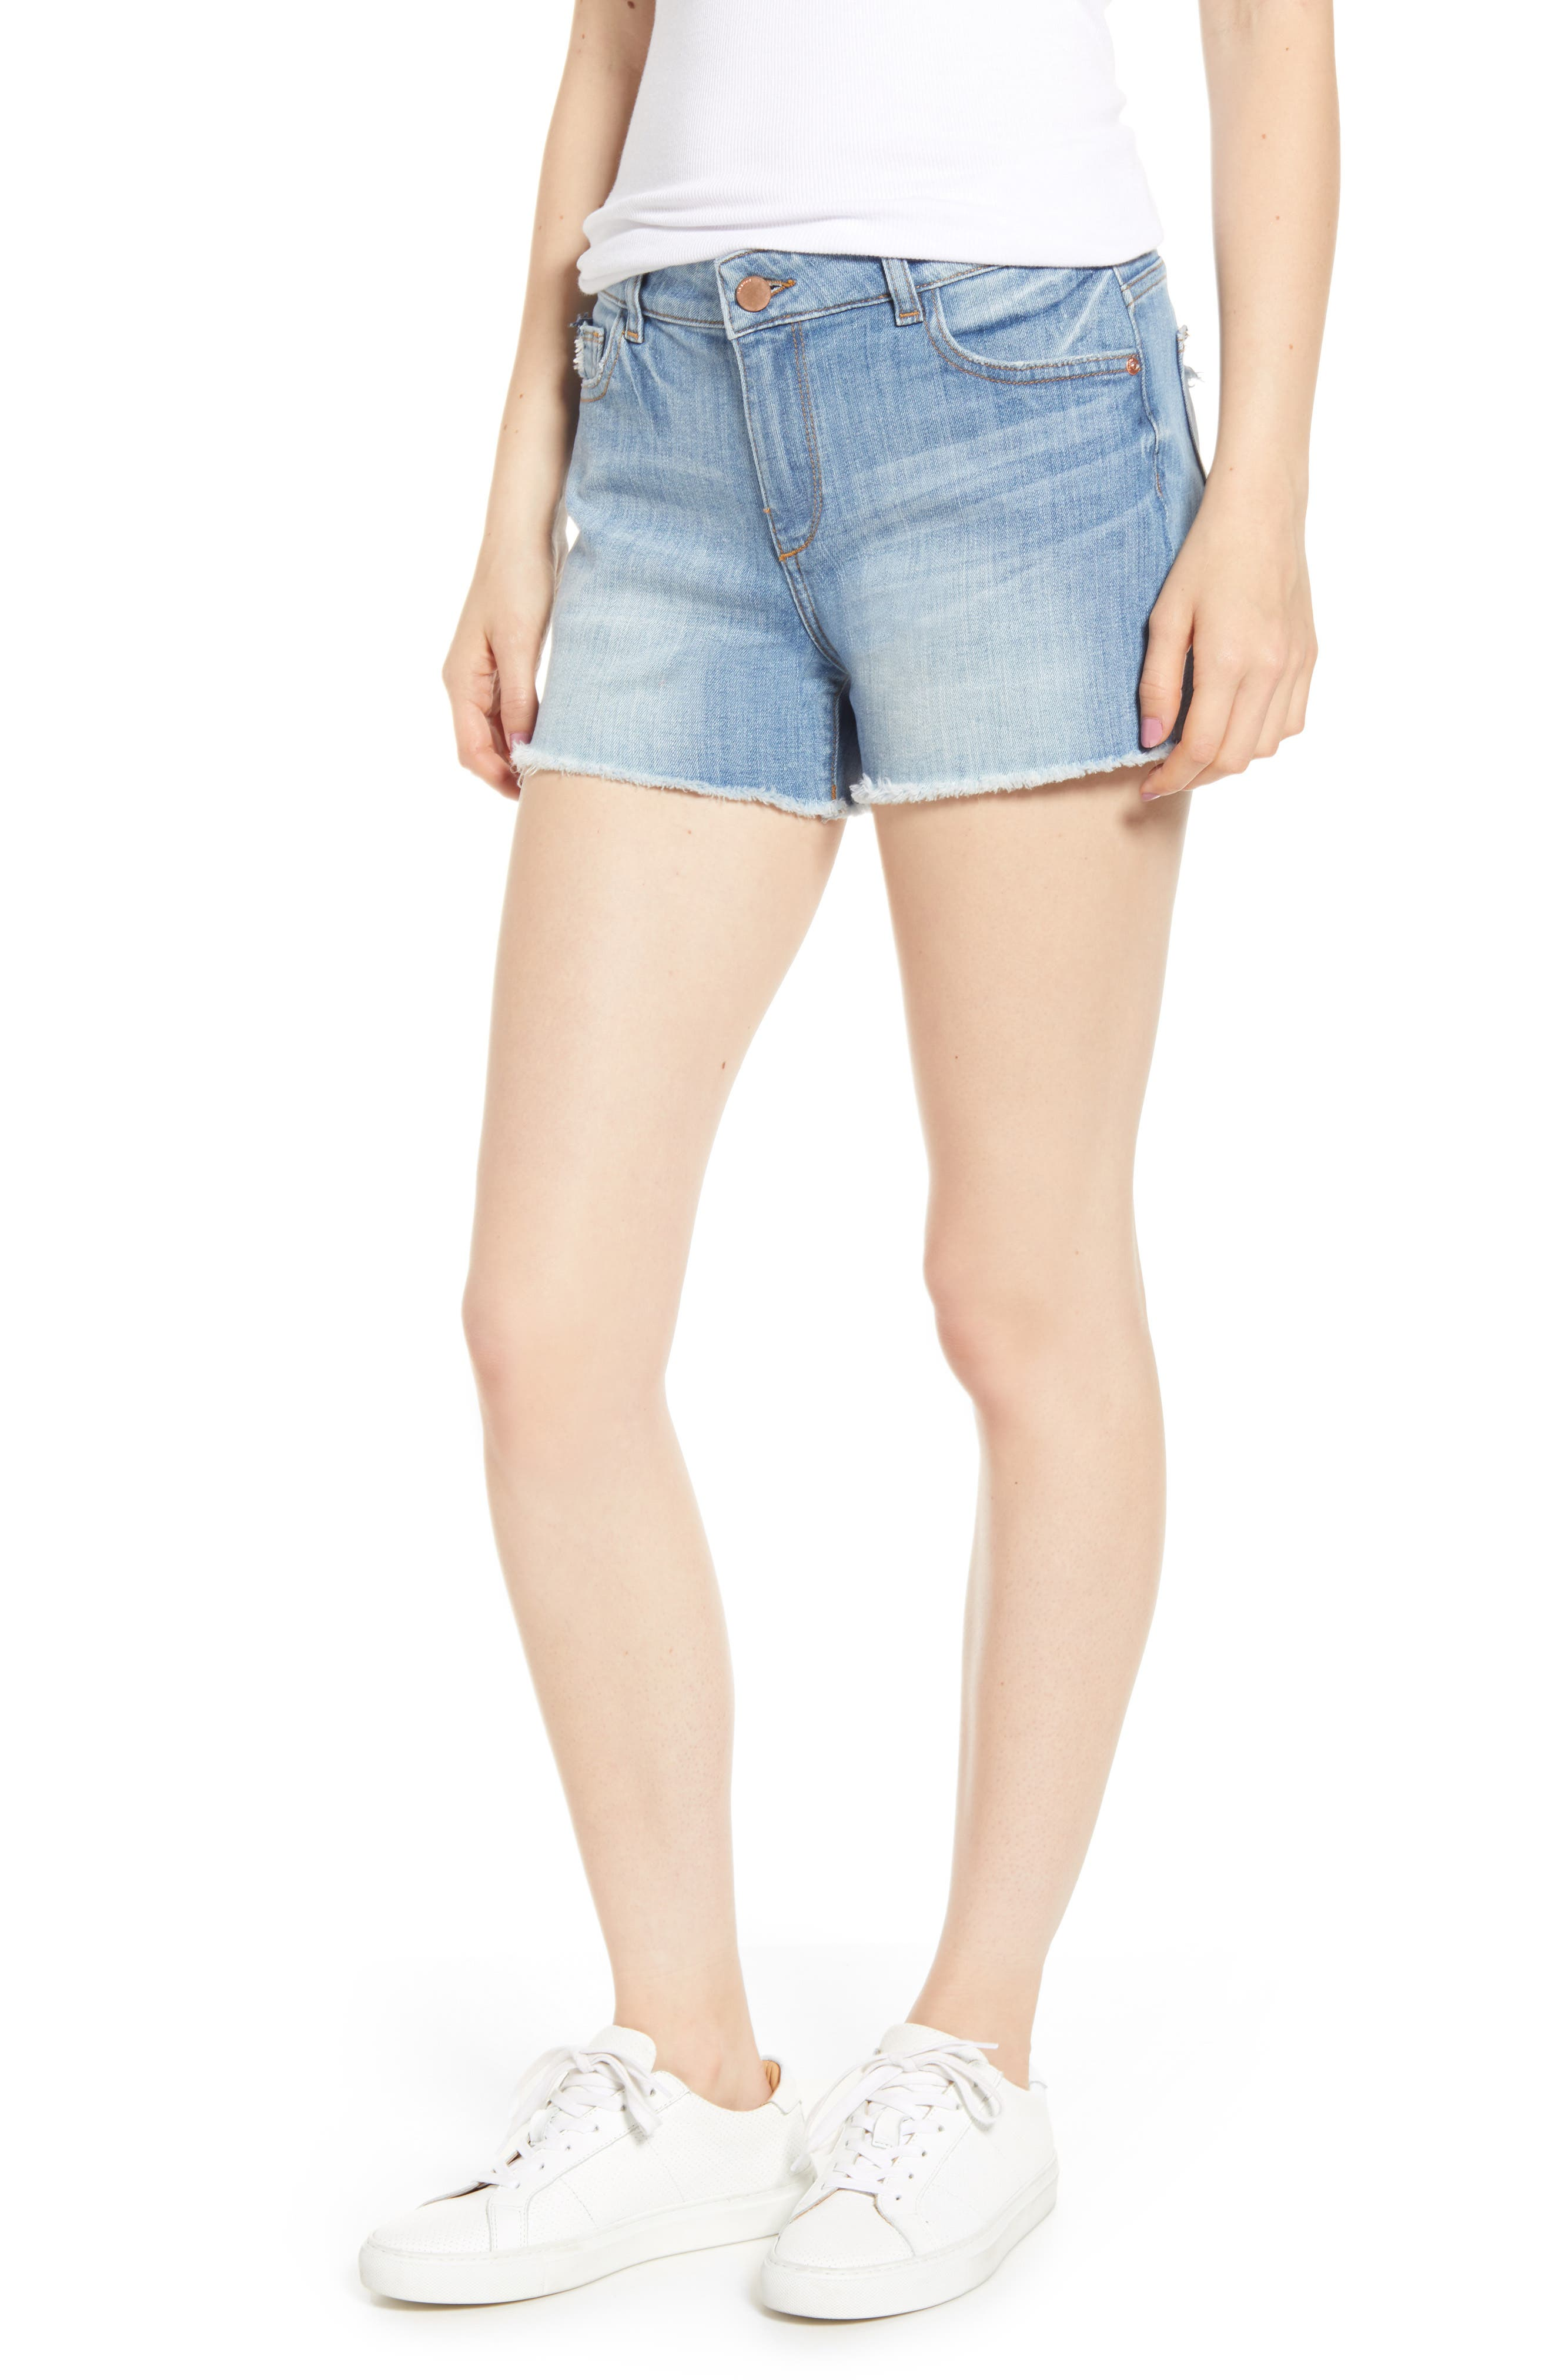 Clothing, Shoes & Accessories Open-Minded Ladies Adidias Shorts Size 22 100% Original